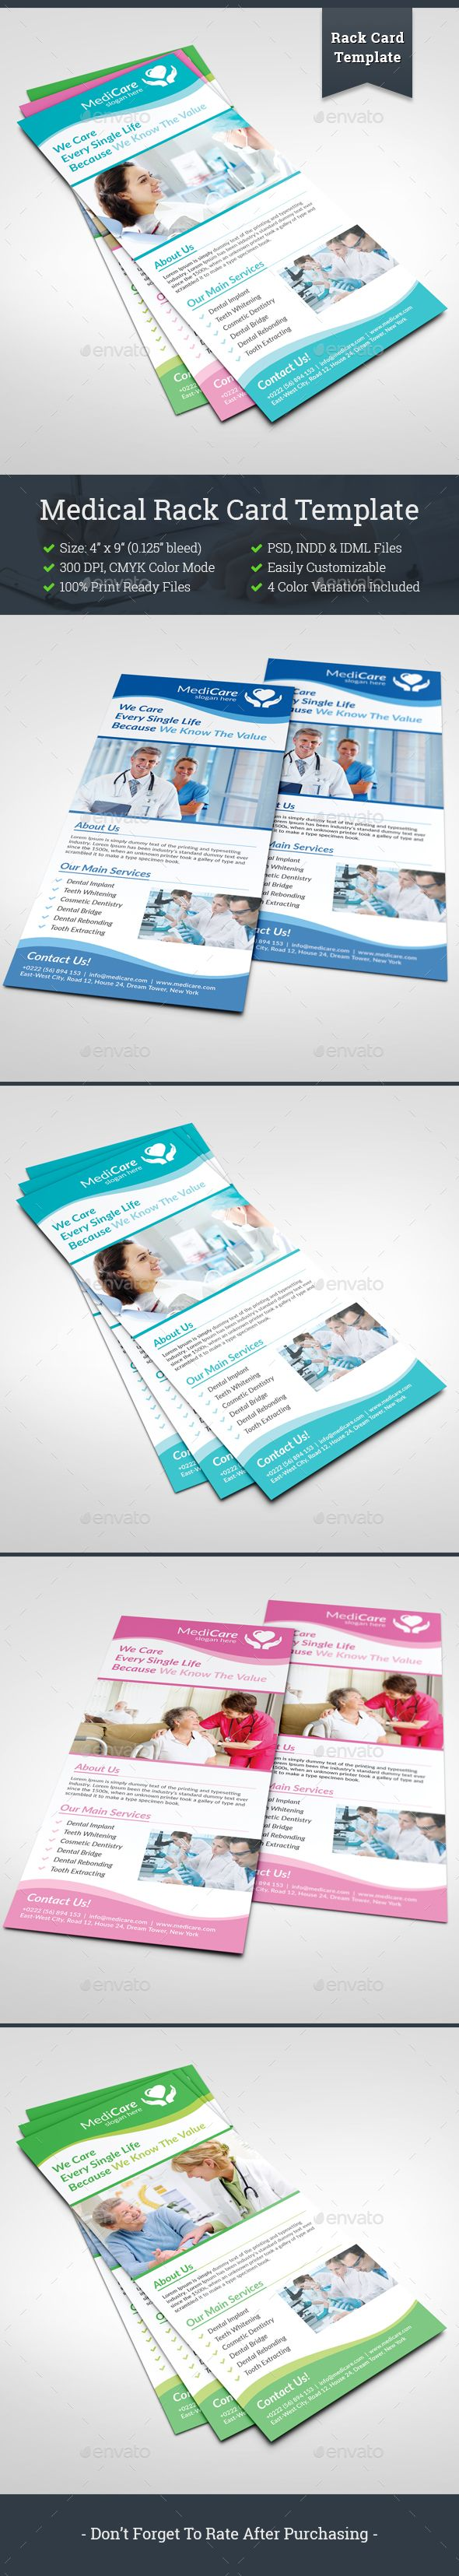 Medical Rack Card Template  Business Card Templates Fonts And